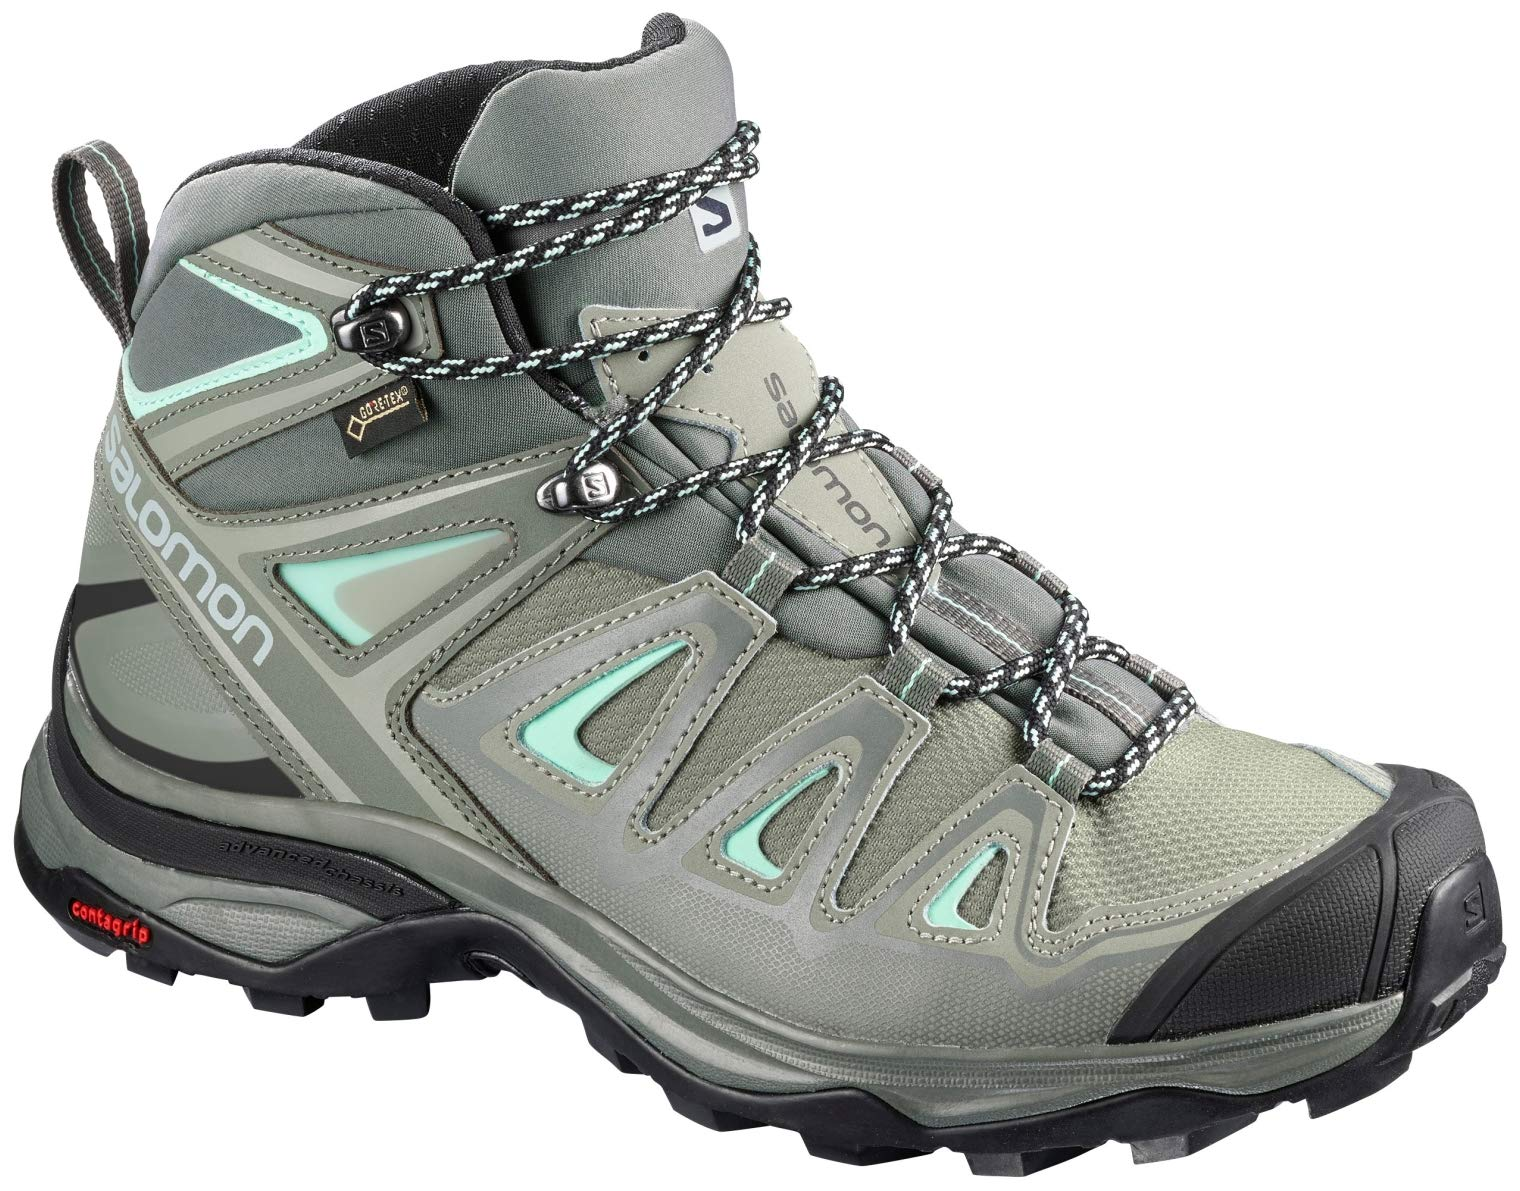 Salomon Women's X Ultra 3 Mid GTX Hiking Boots, SHADOW/Castor Gray/Beach Glass, 5 by SALOMON